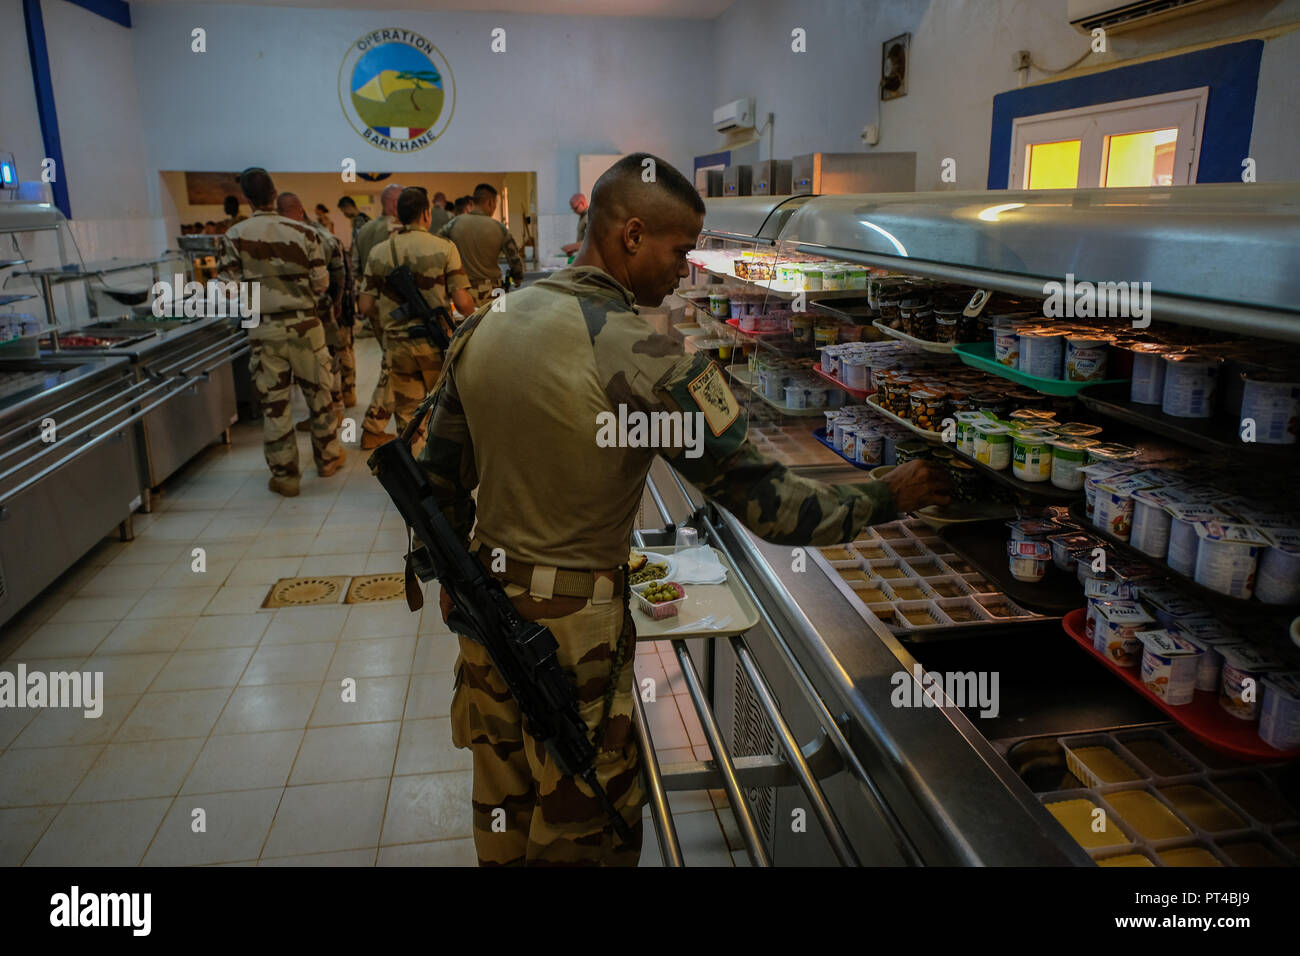 Gao's French base in Mali is the largest of the Barkhane external operation. It is from this base that the operations are launched against terrorist armed groups.. Gao - Mali - august 2018. La base française de Gao au Mali est la plus importante de l'opération extérieure Barkhane. C'est depuis cette emprise que les opérations sont lancées contre les groupes armés terroristes.. Gao - Mali - août 2018. Stock Photo